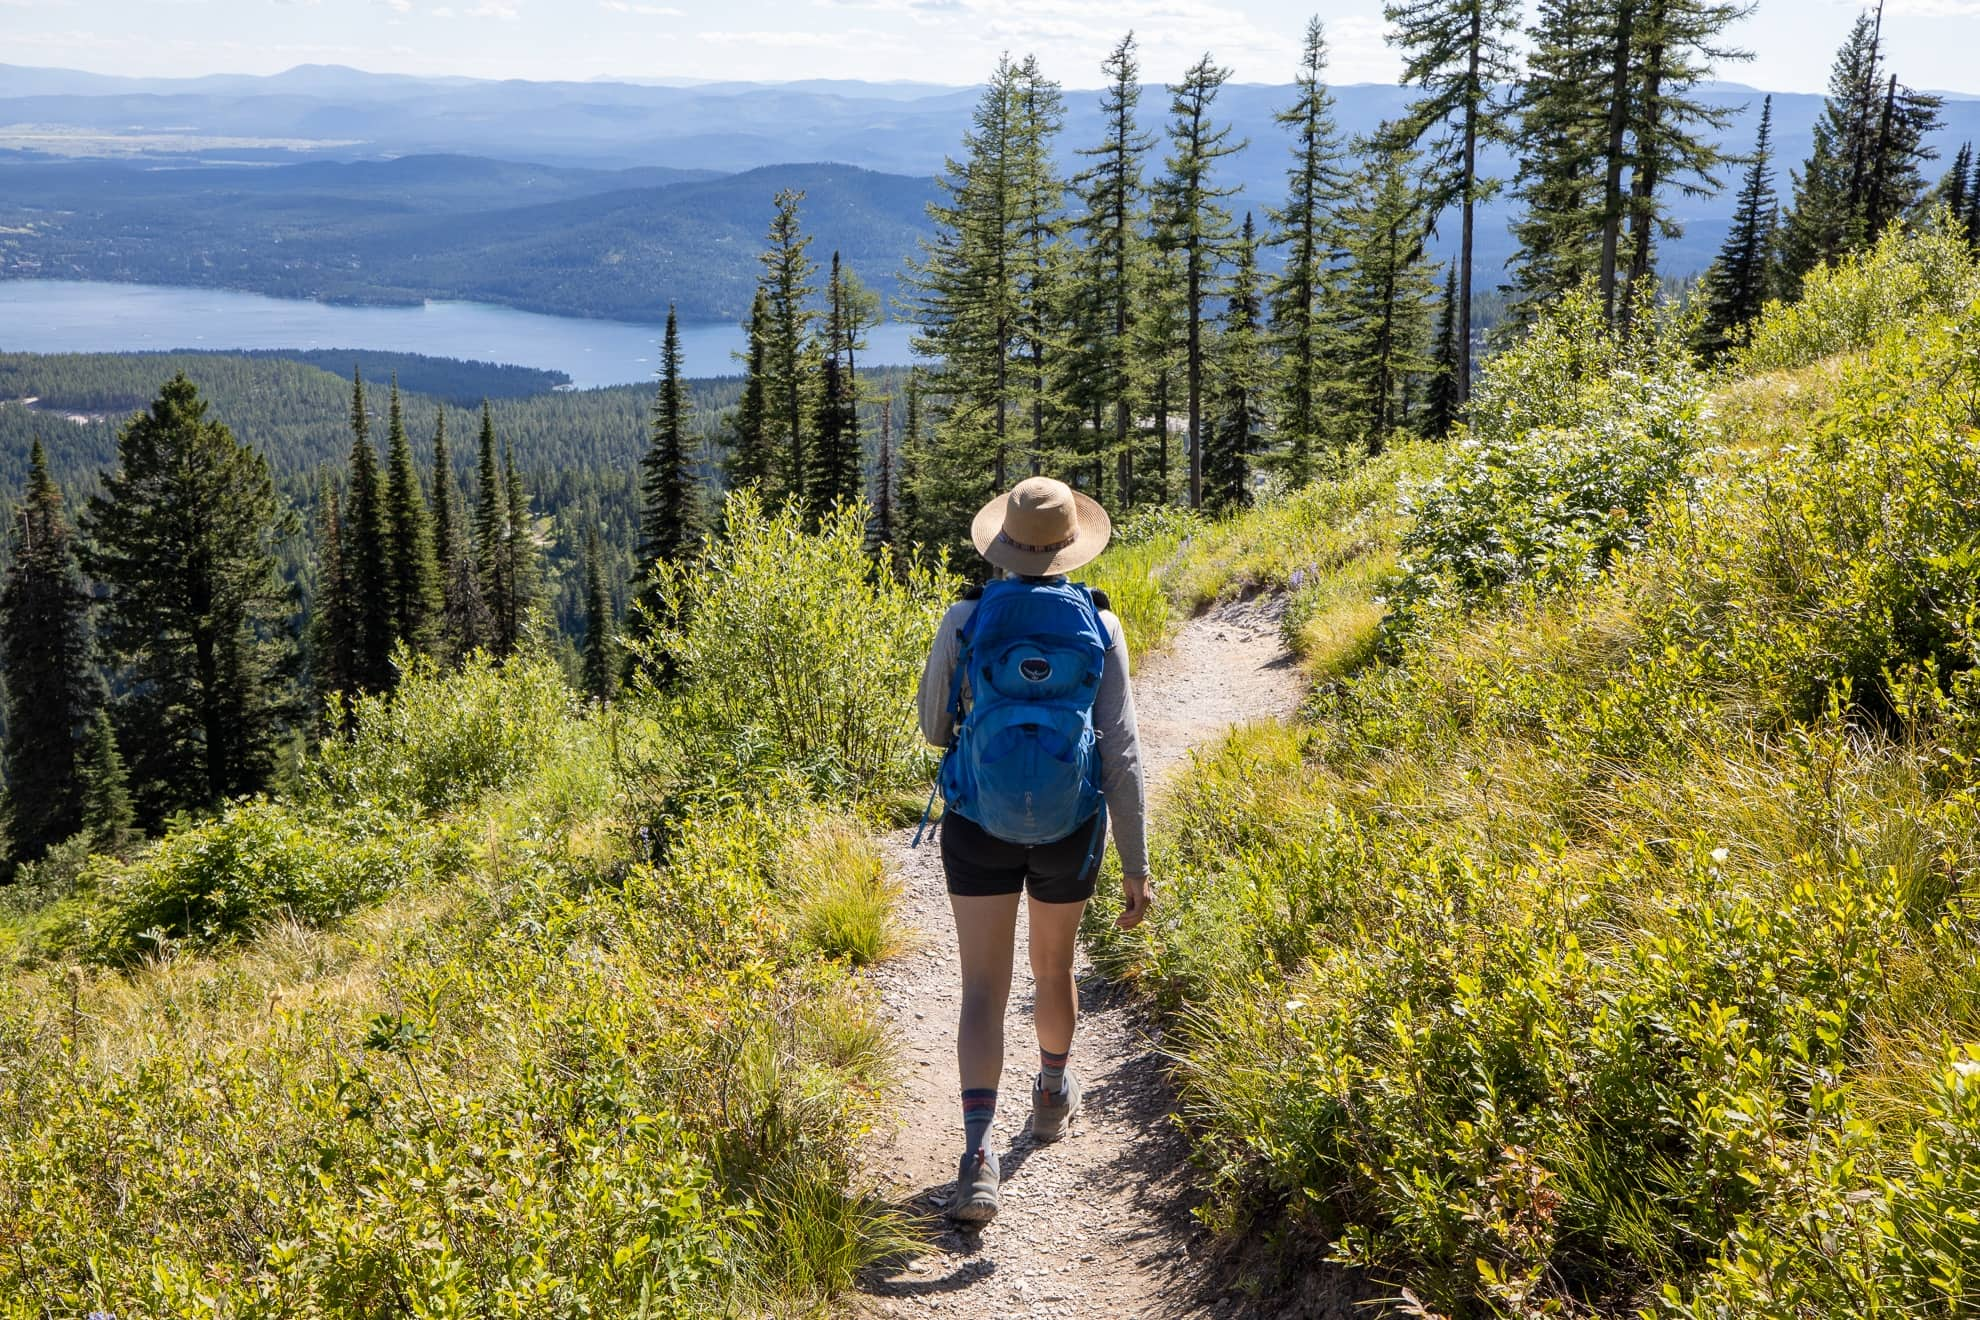 How to Choose a Hiking Trail: Tips Before Heading Out